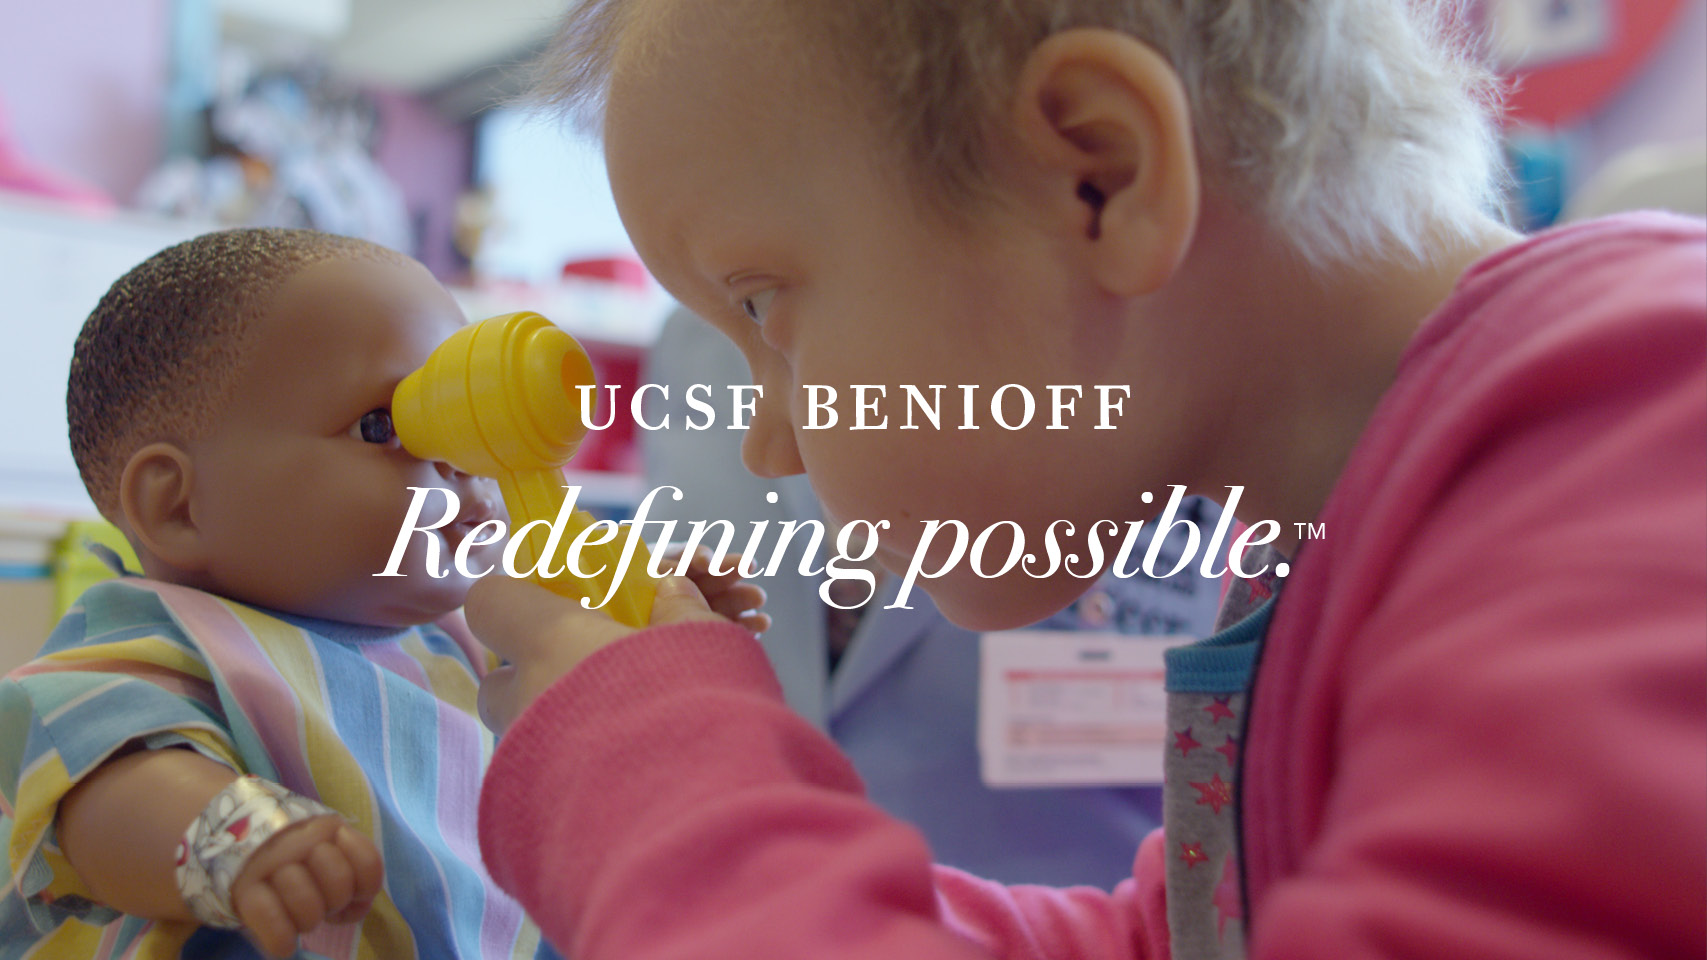 ucsf-benioff-feature-4.jpg